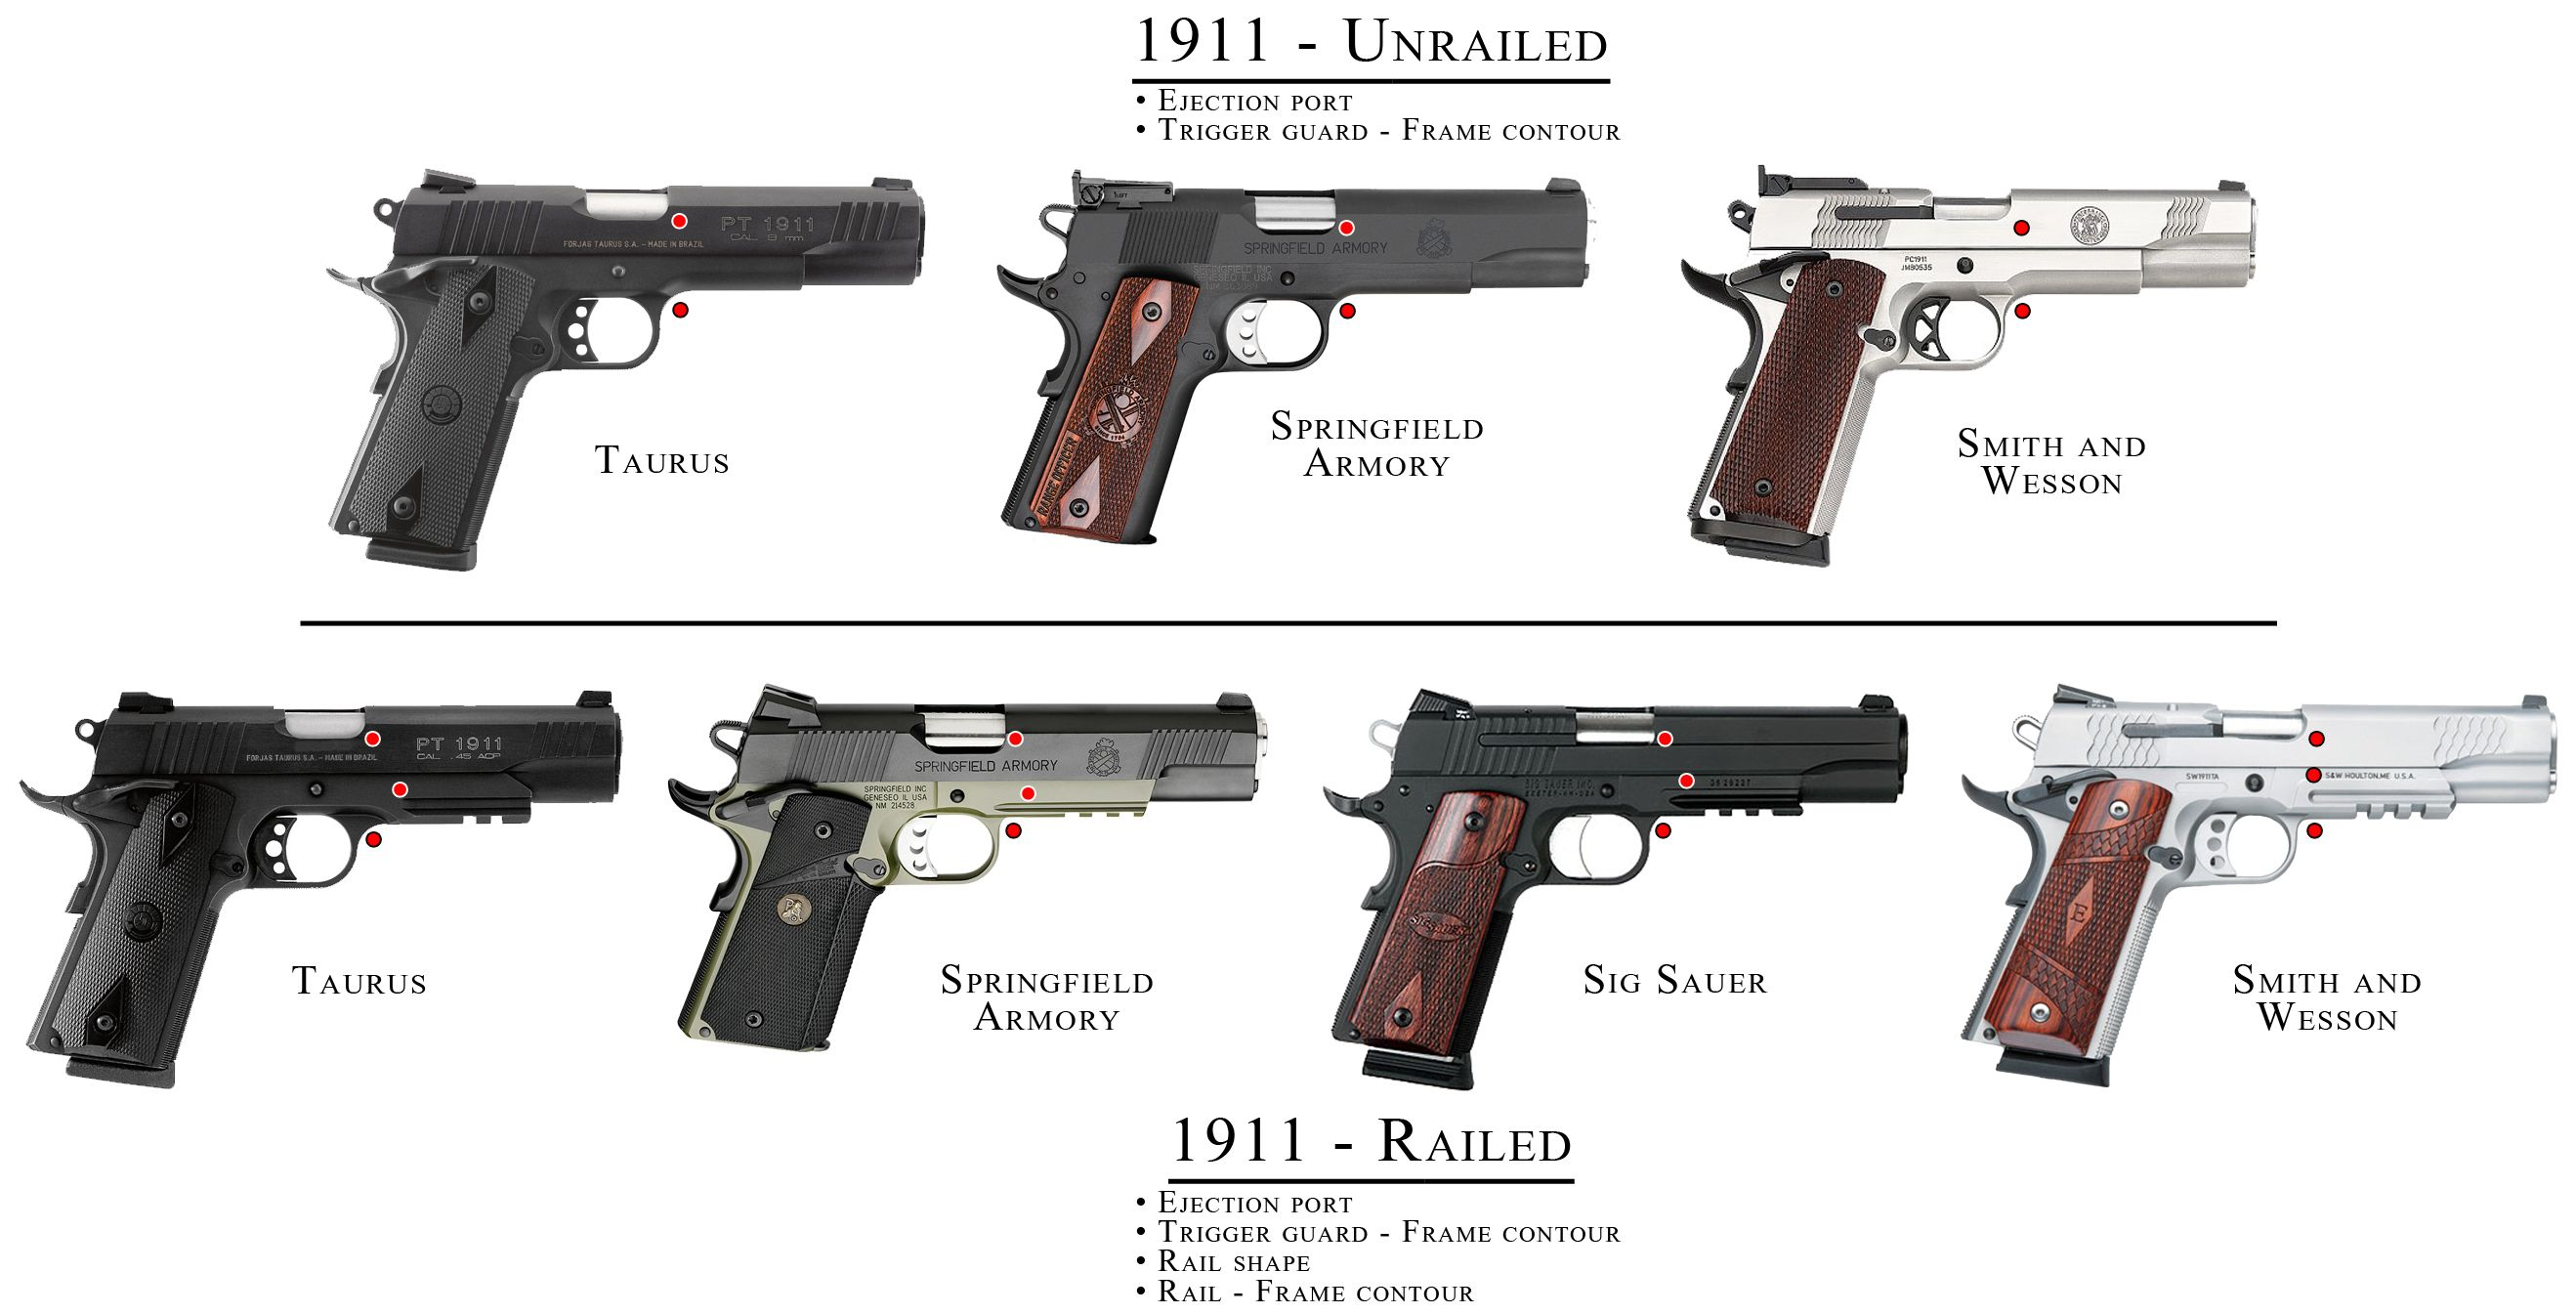 1911 frame comparison: All 1911 are not the same! One size